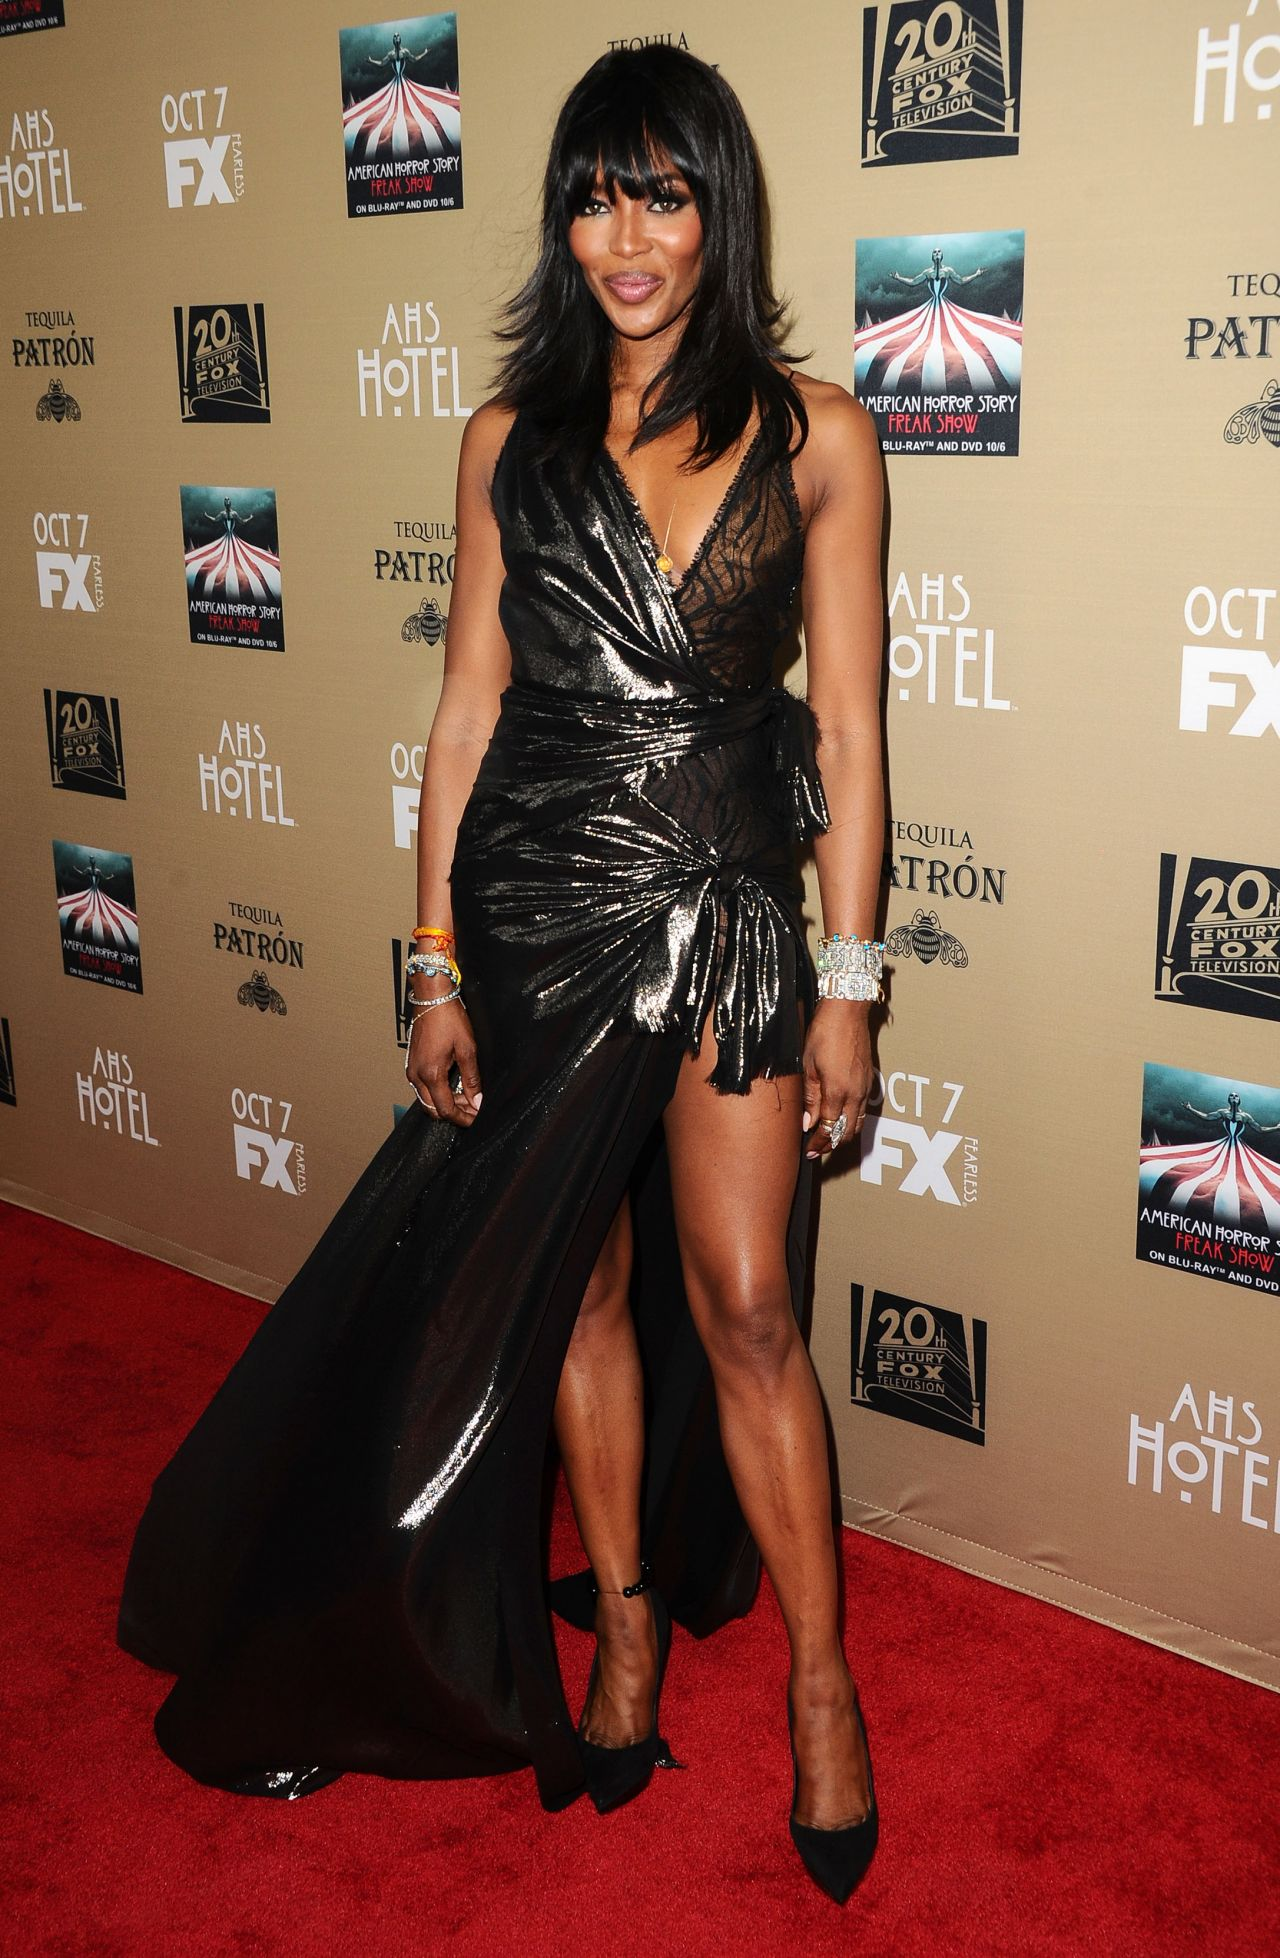 naomi-campbell-fx-s-american-horror-story-hotel-screening-in-los-angeles_1